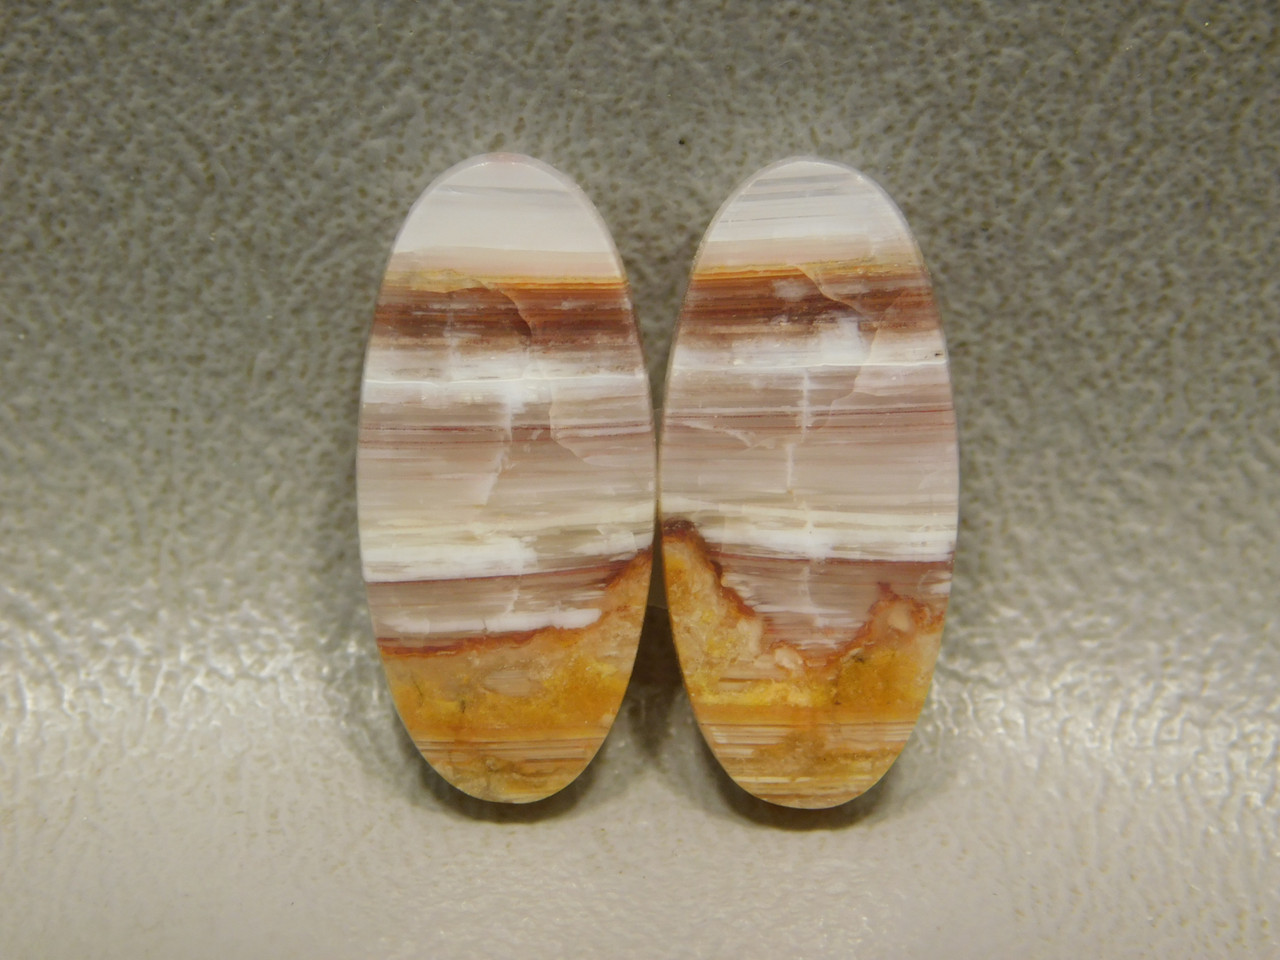 Striped Candy Opal Matched Pairs Small Cabochon Stones #2